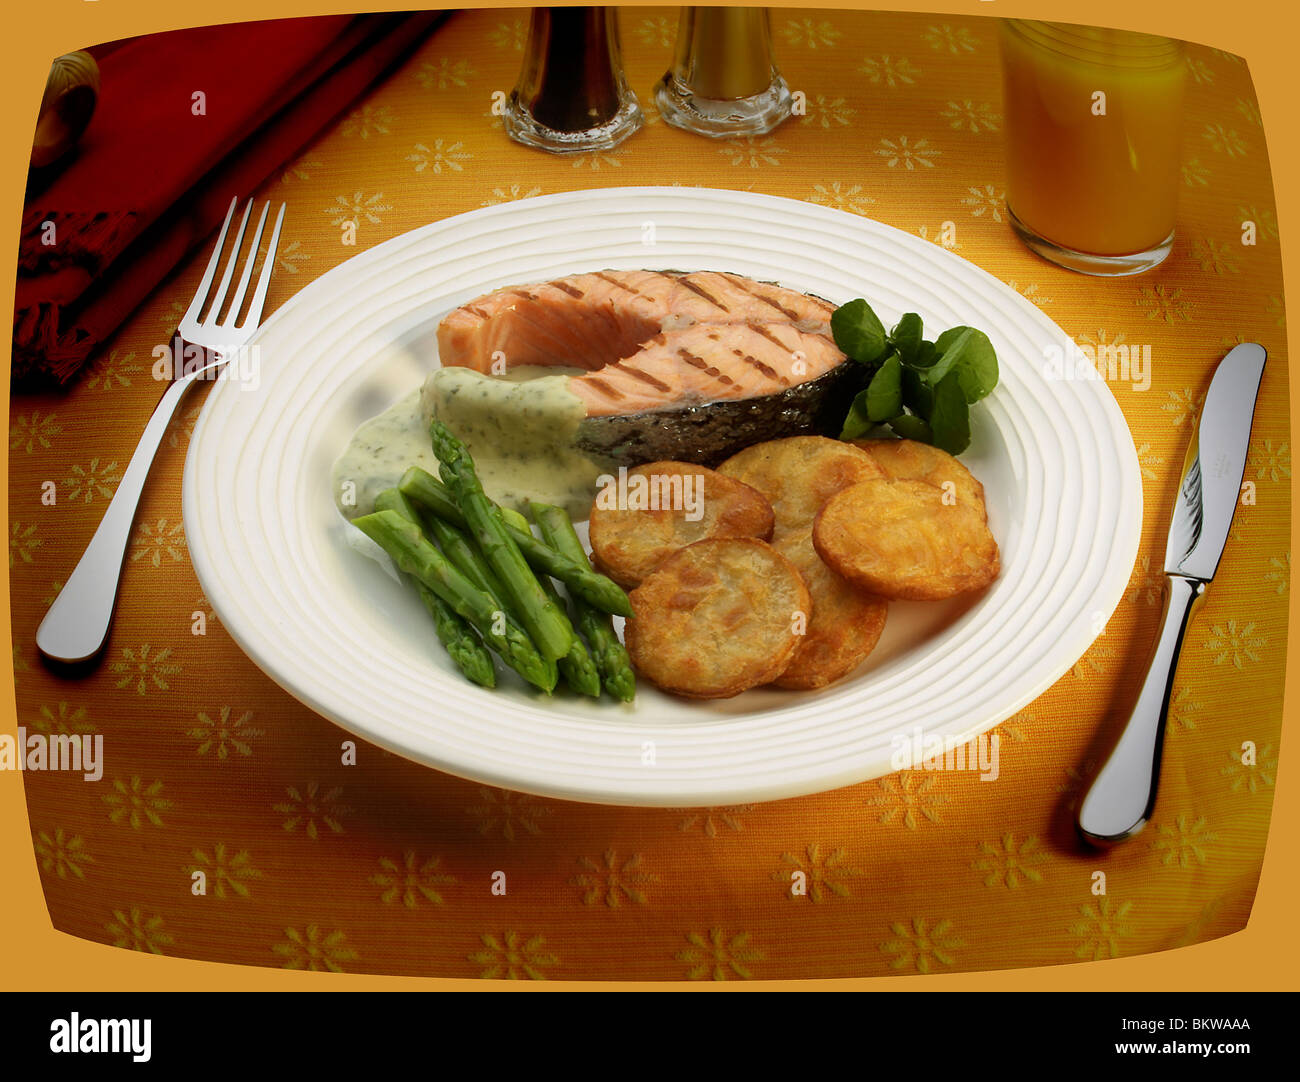 TV Dinner - Stock Image